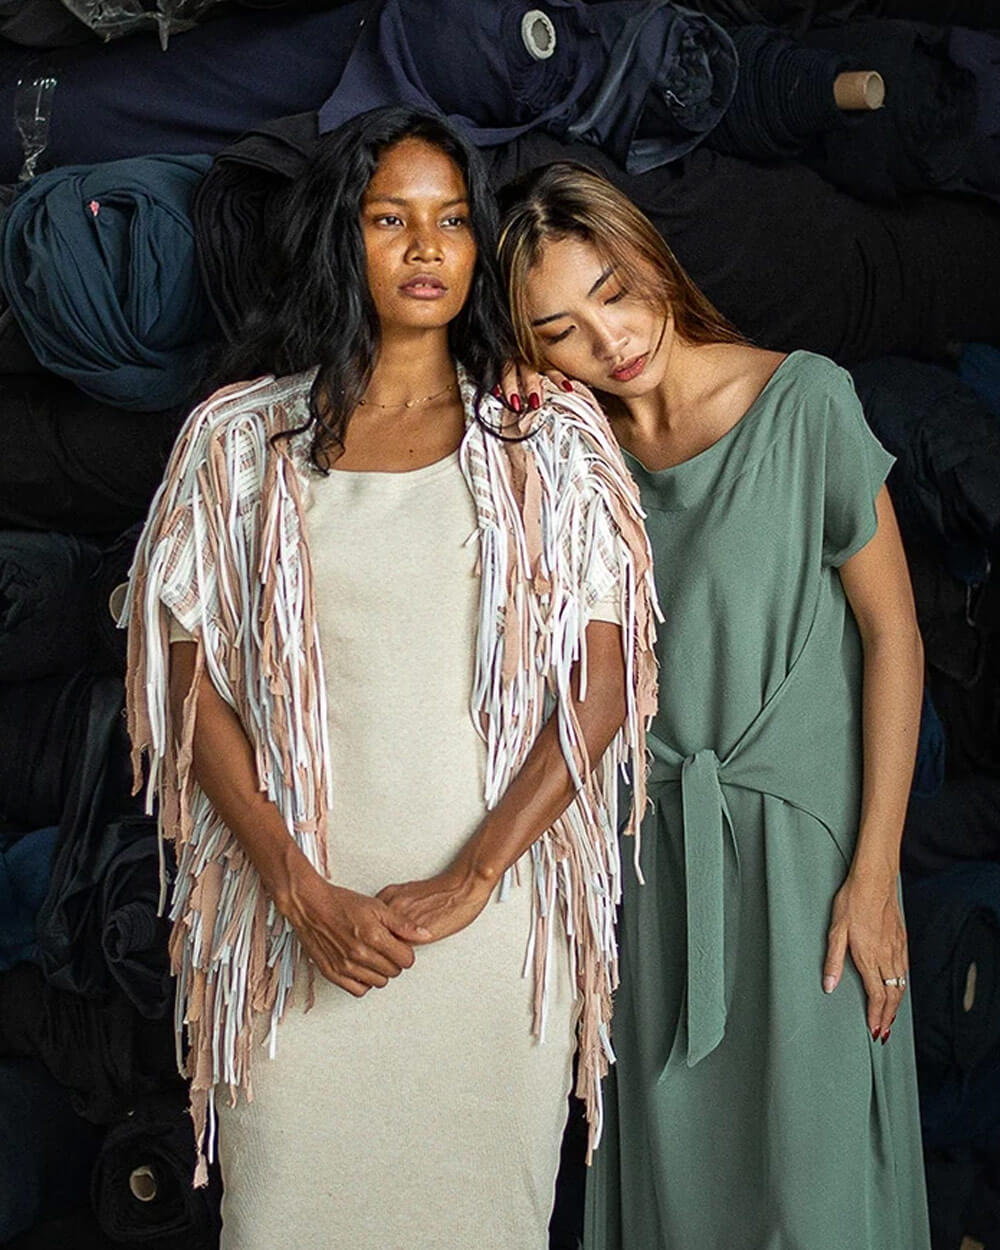 Tonlé sustainable clothing brand